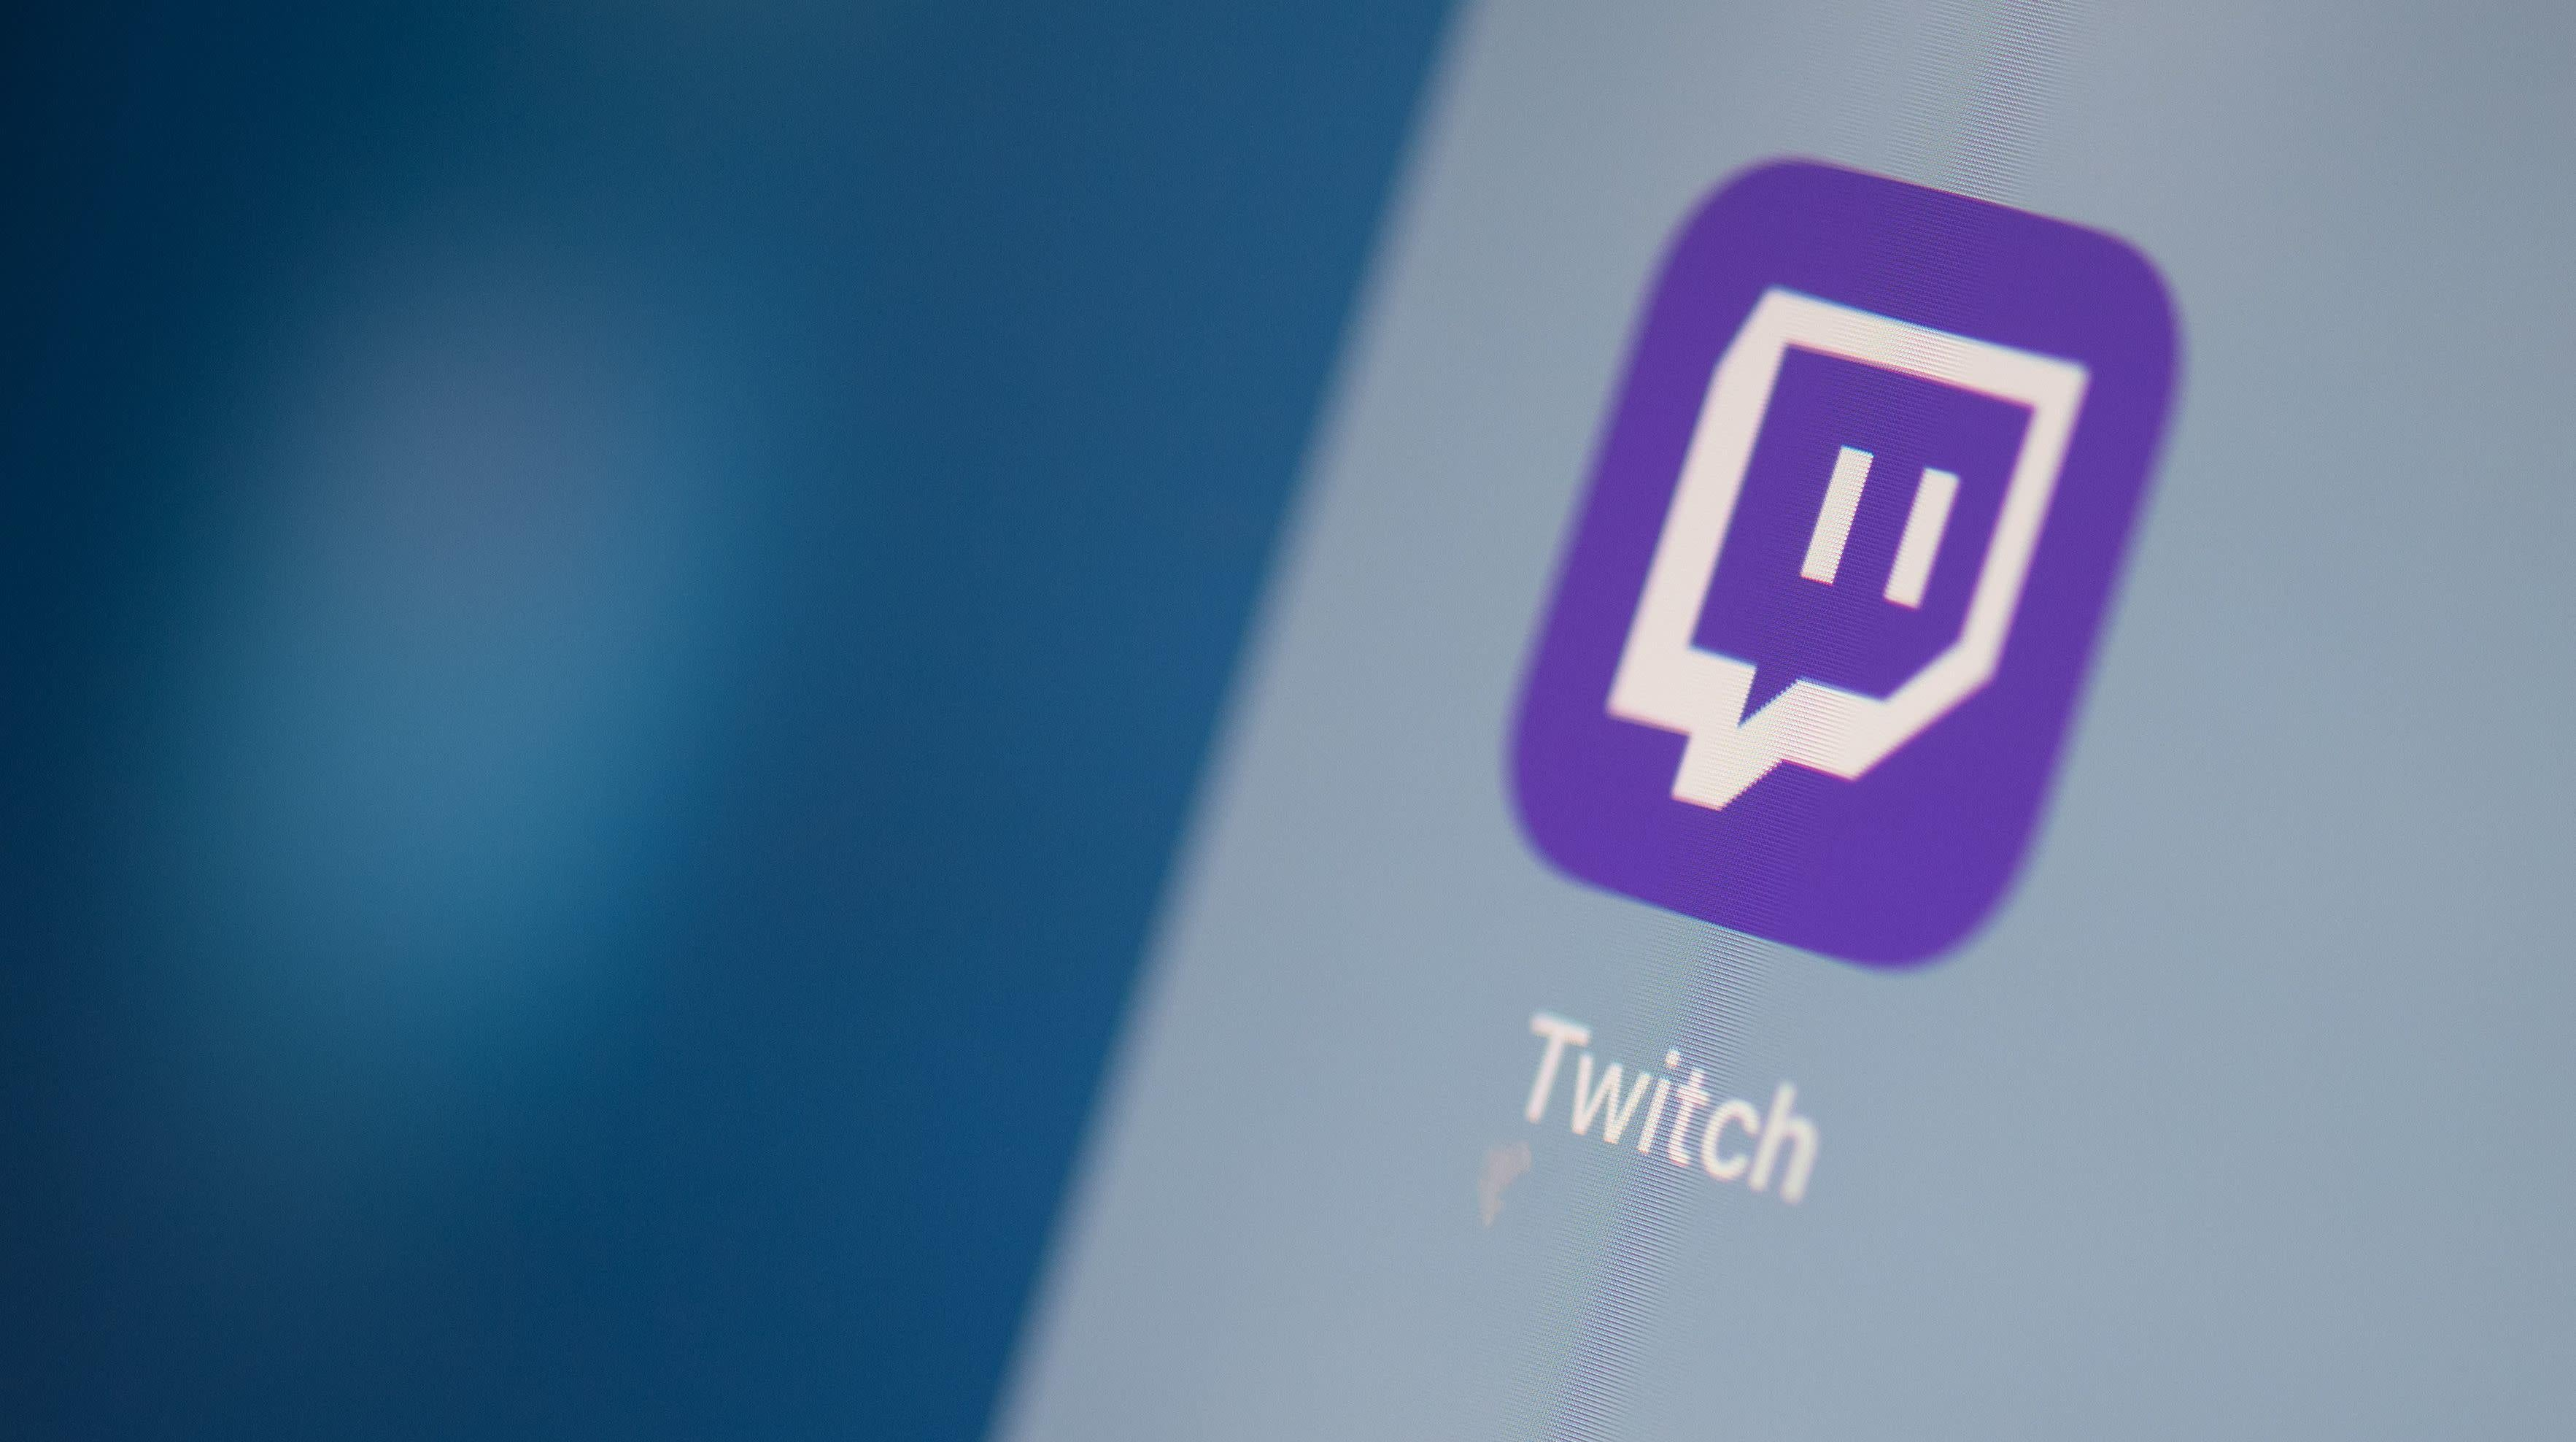 Twitch Updates Its Vague Attire Policy With Further Specificity On Underboob